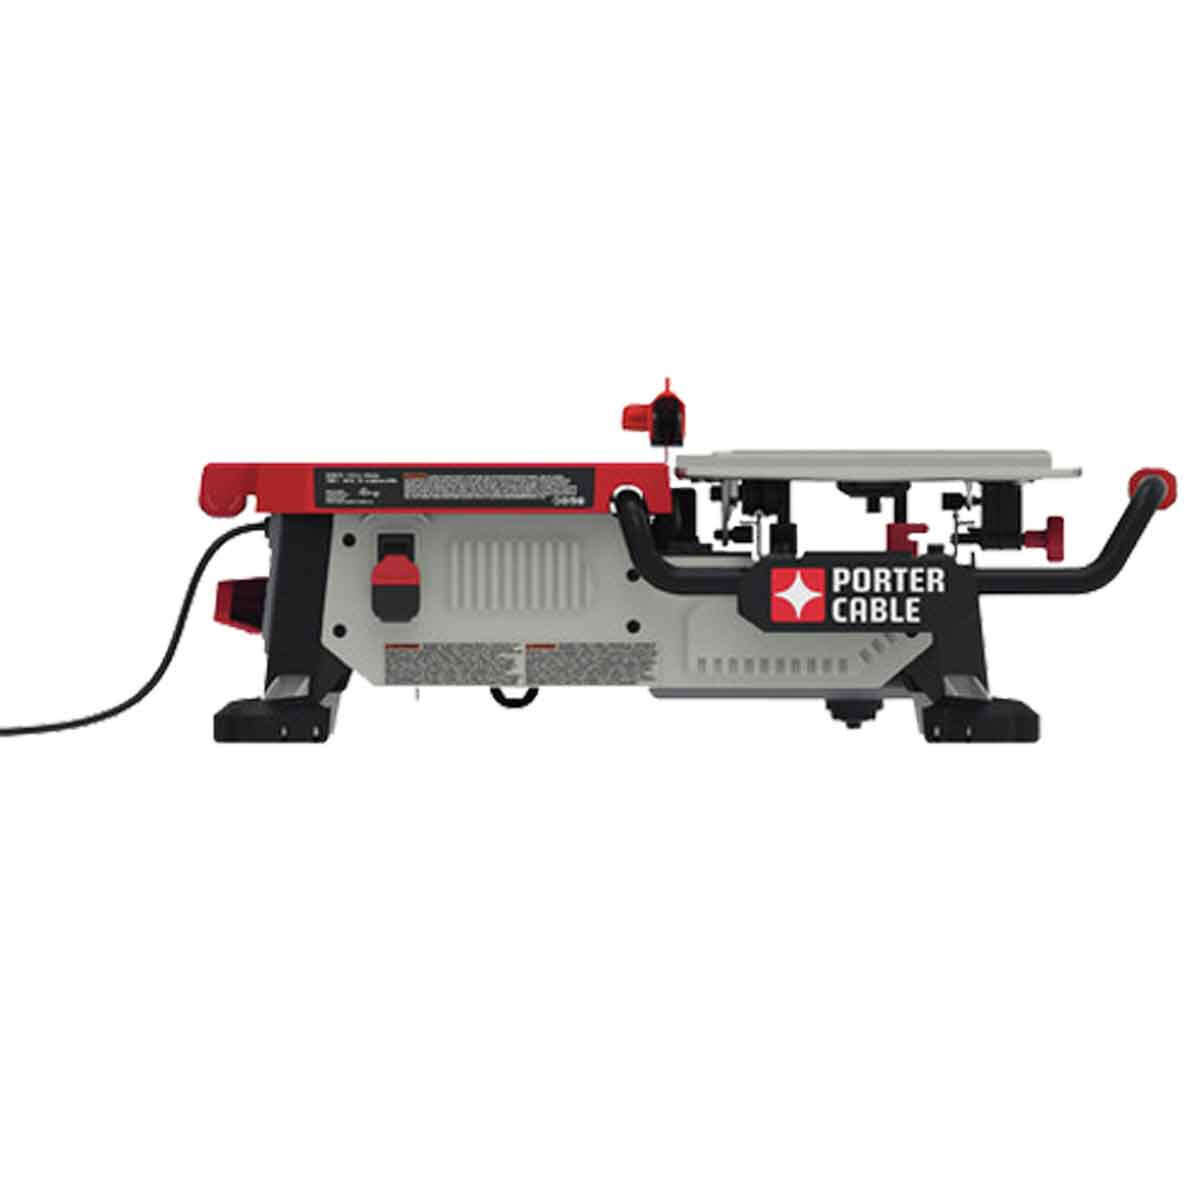 Porter Cable 7 inch Table Top Wet Tile Saw side view